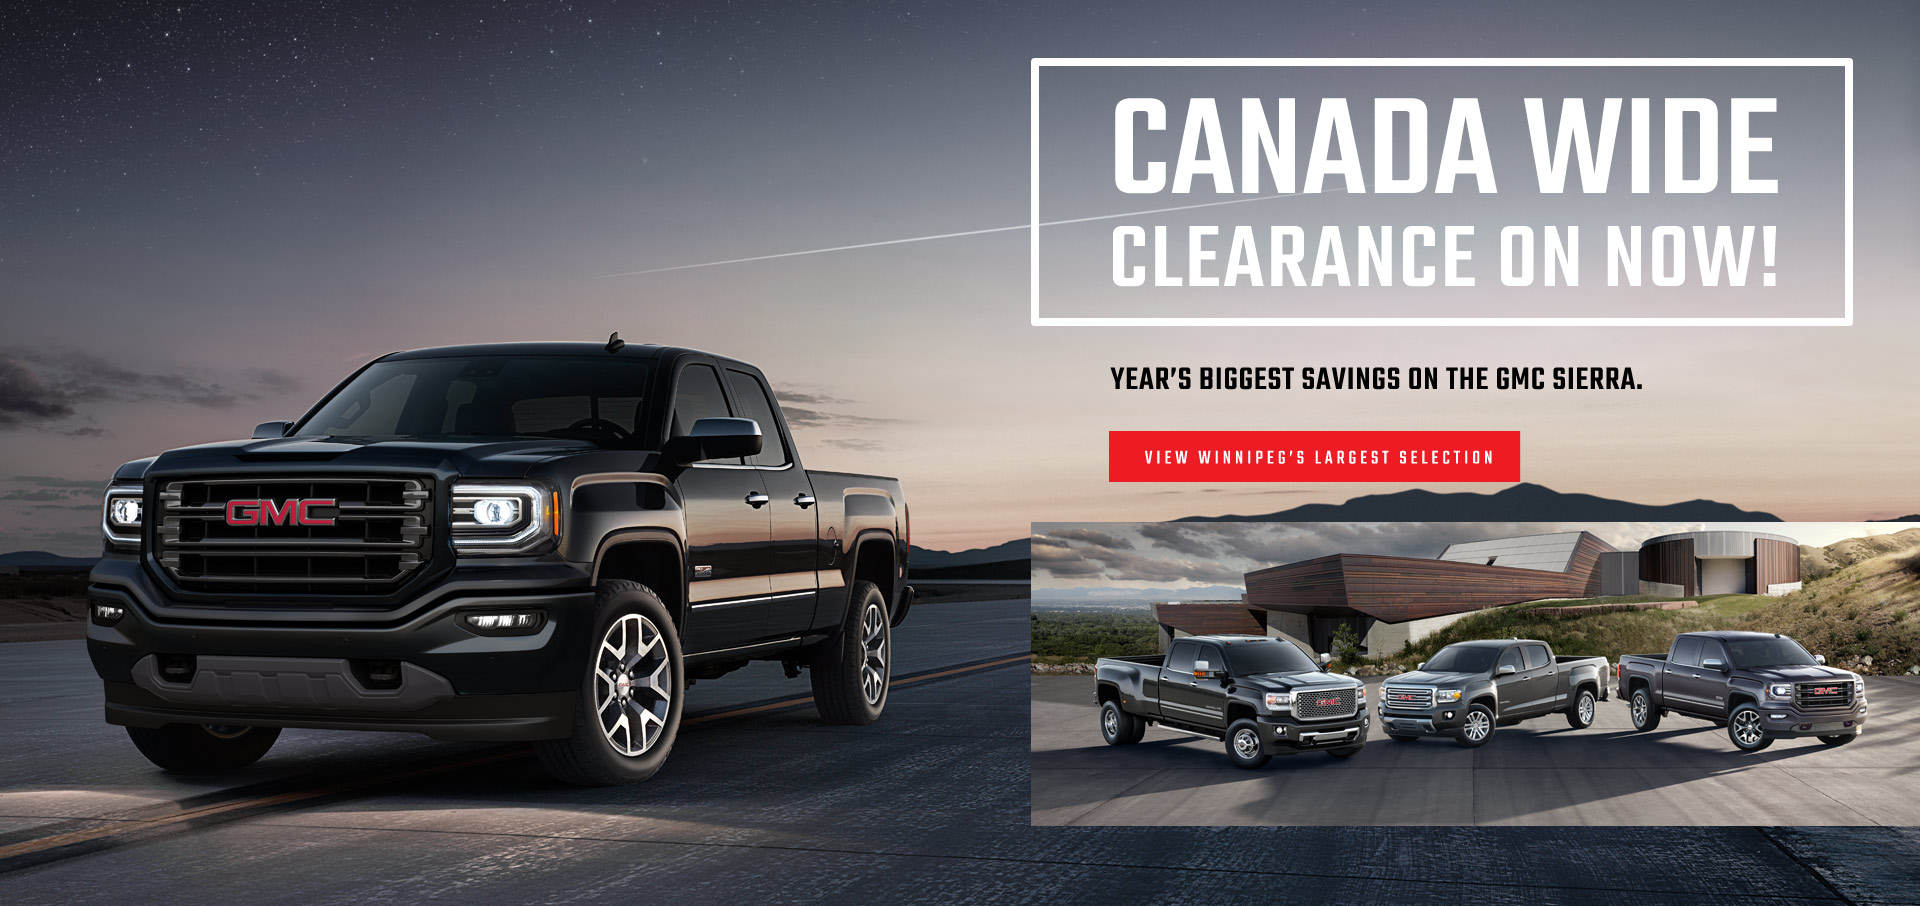 GMC Winnipeg Dealership Sale Event